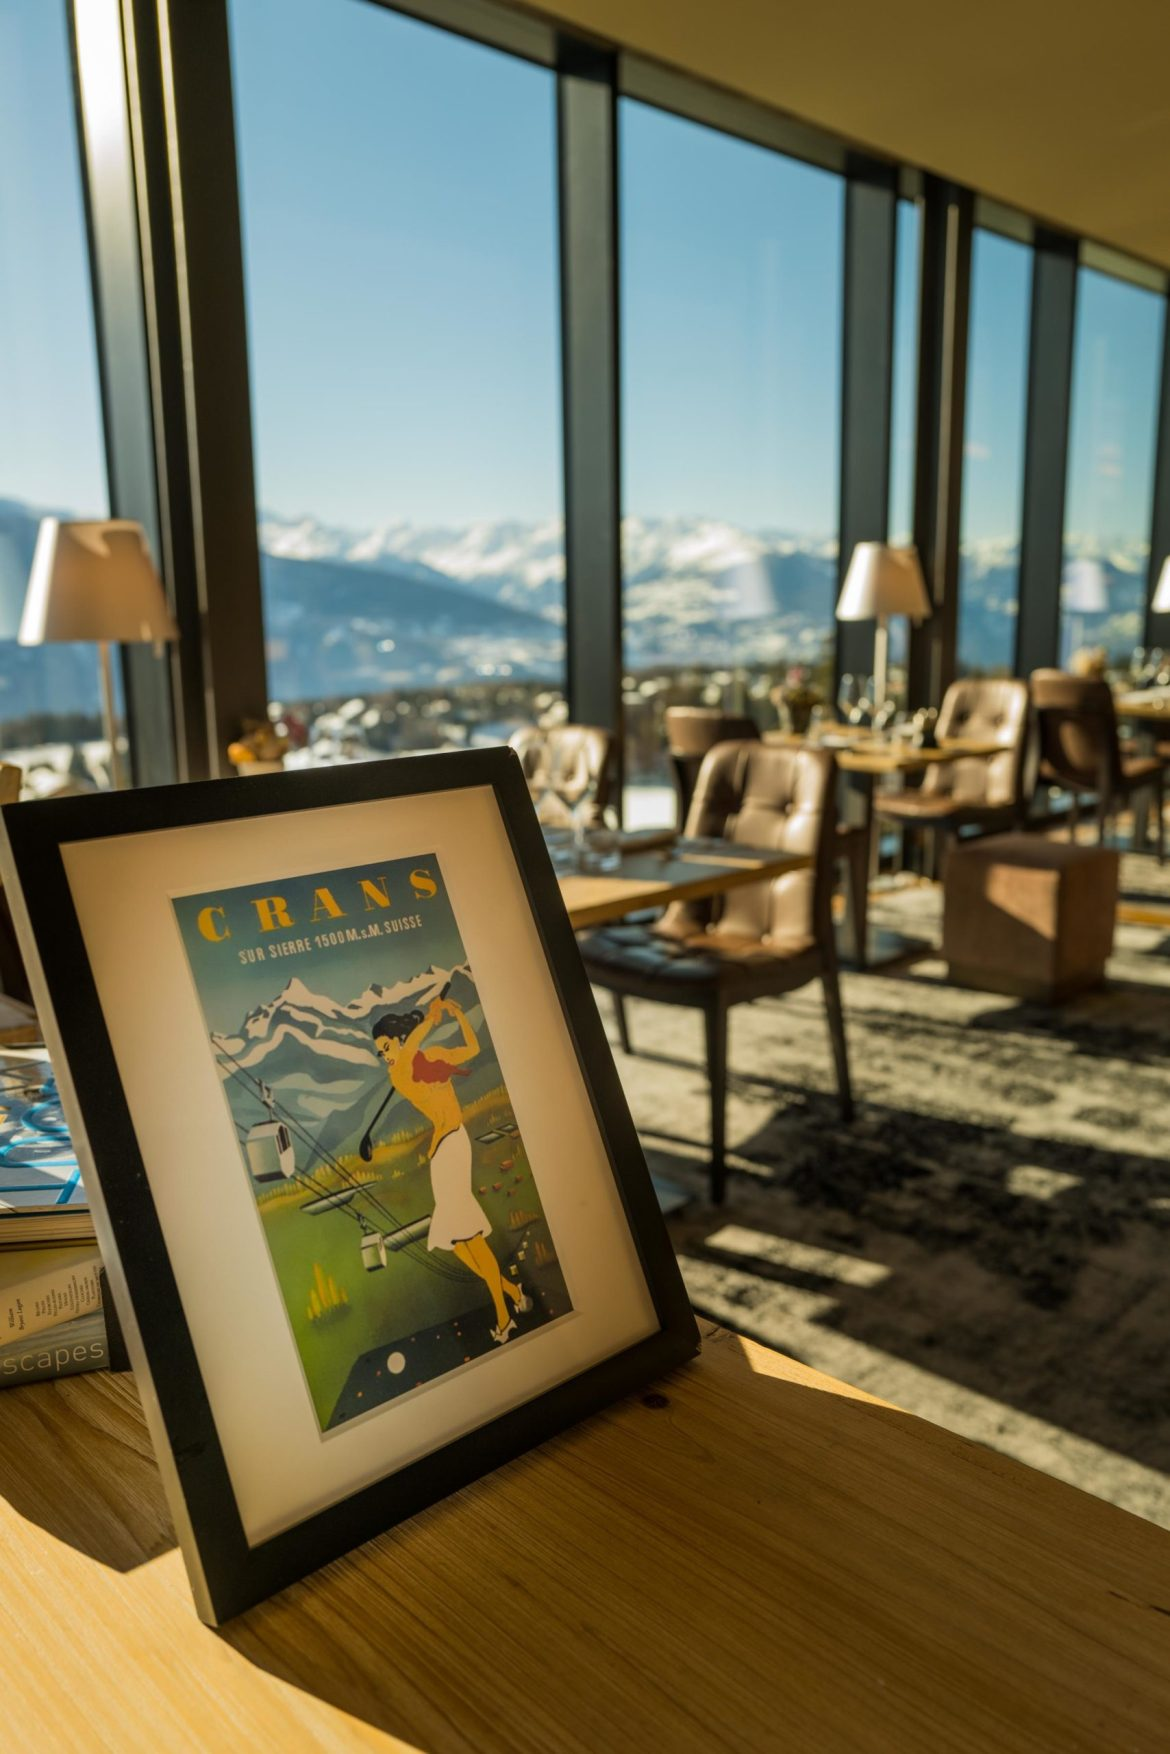 A cozy interior at the restaurant at Crans Ambassador Hotel in Crans Montana, Switzerland. By The Taste Edit #views #hotel